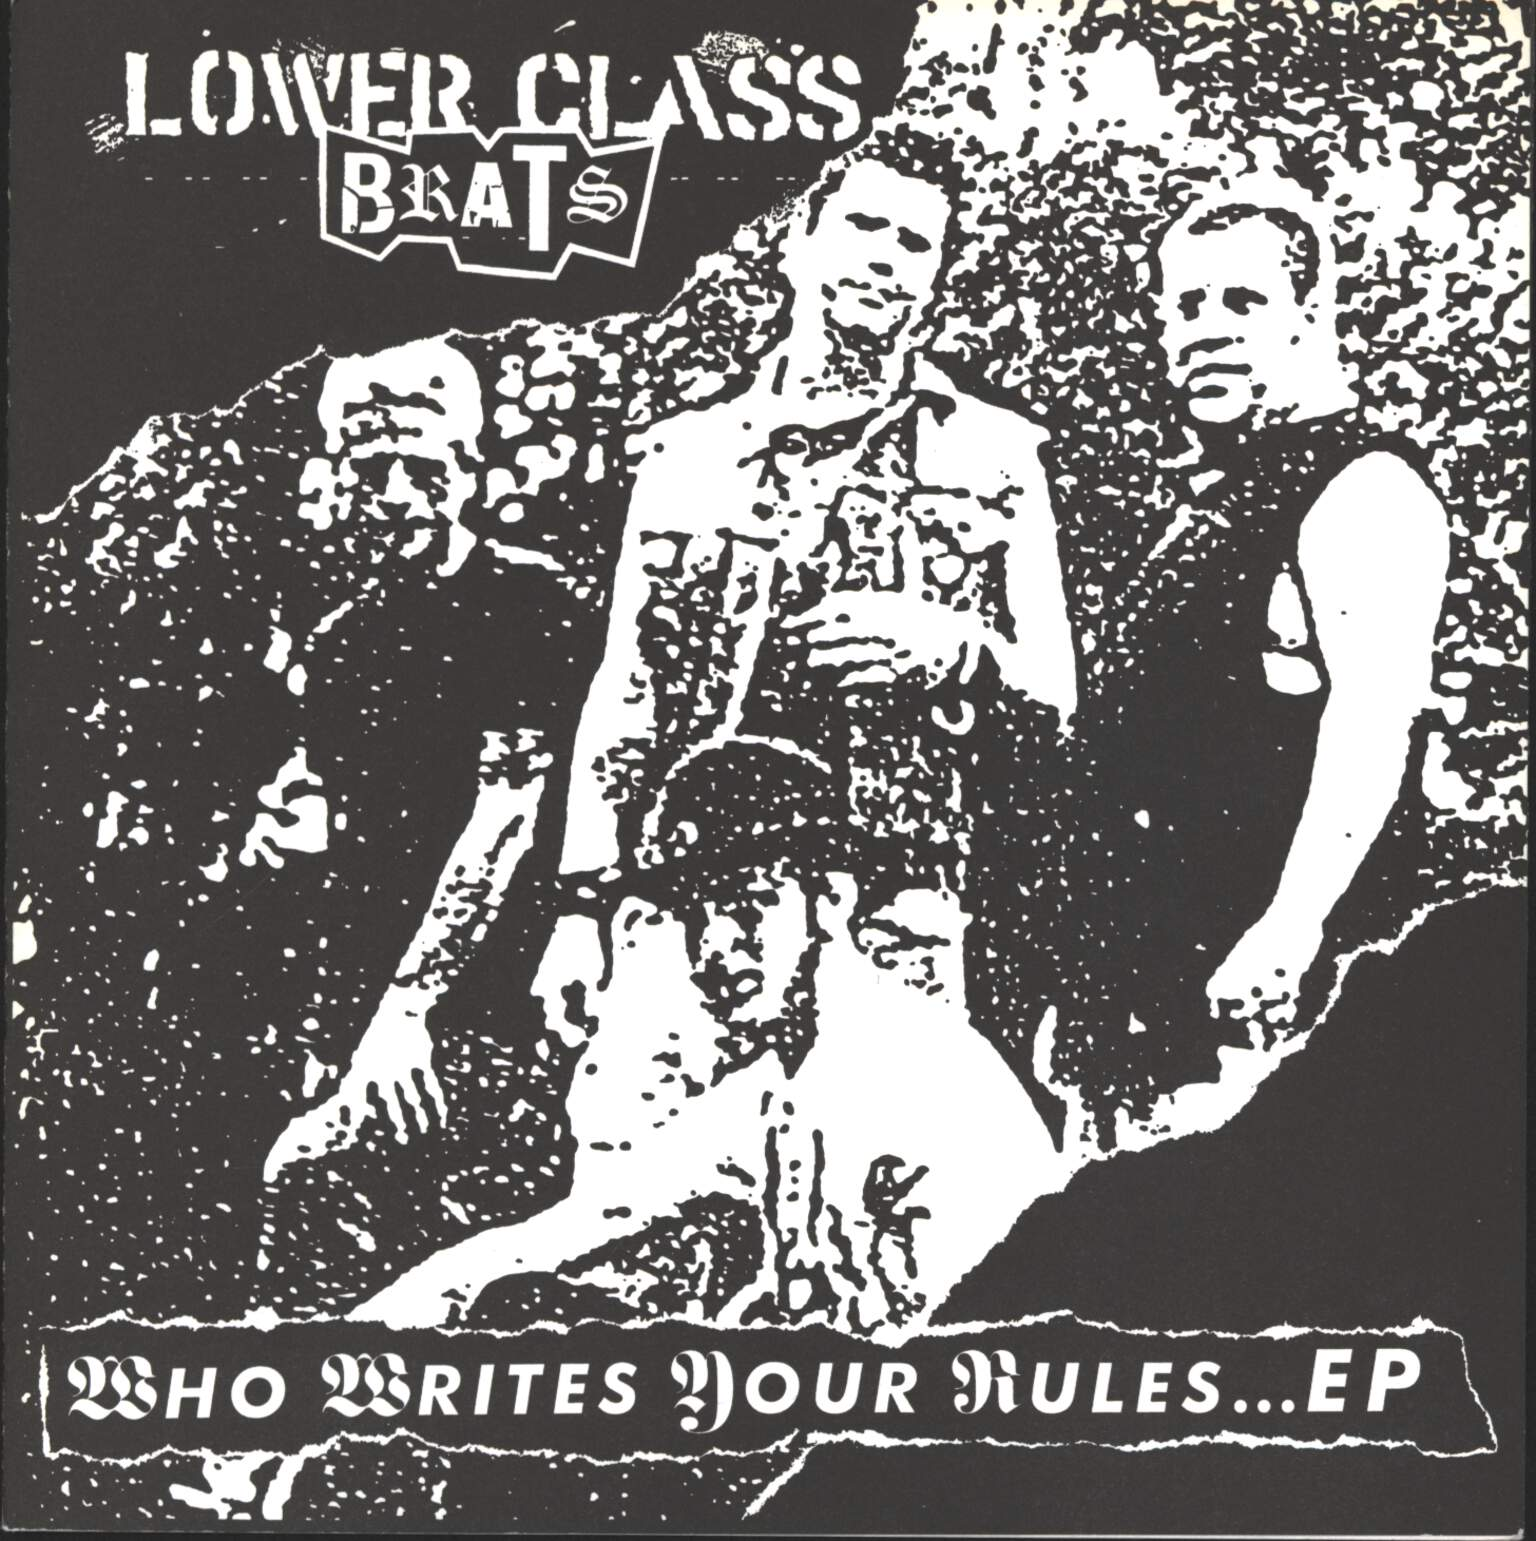 "Lower Class Brats: Who Writes Your Rules... EP, 7"" Single (Vinyl)"